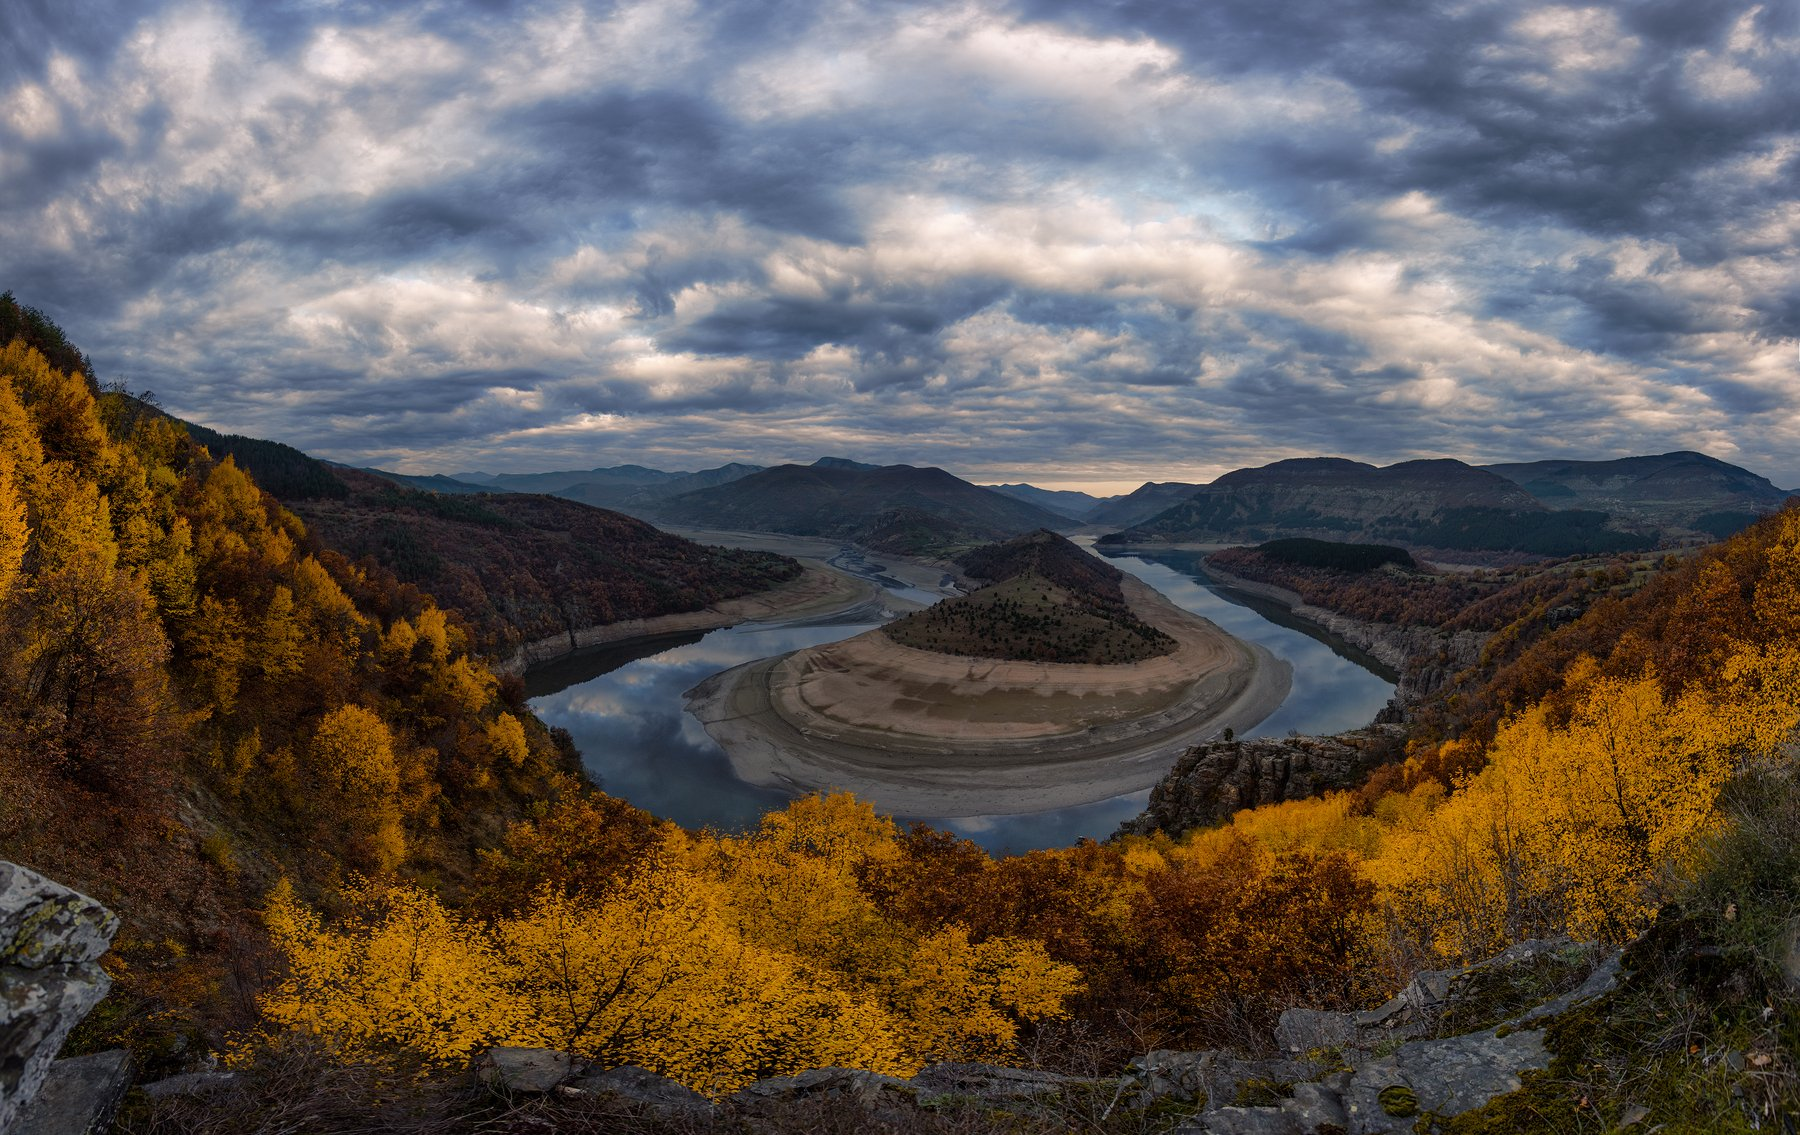 landscape, nature, meander, sky, bulgaria, autumn, river, sunrise, Руслан Асанов